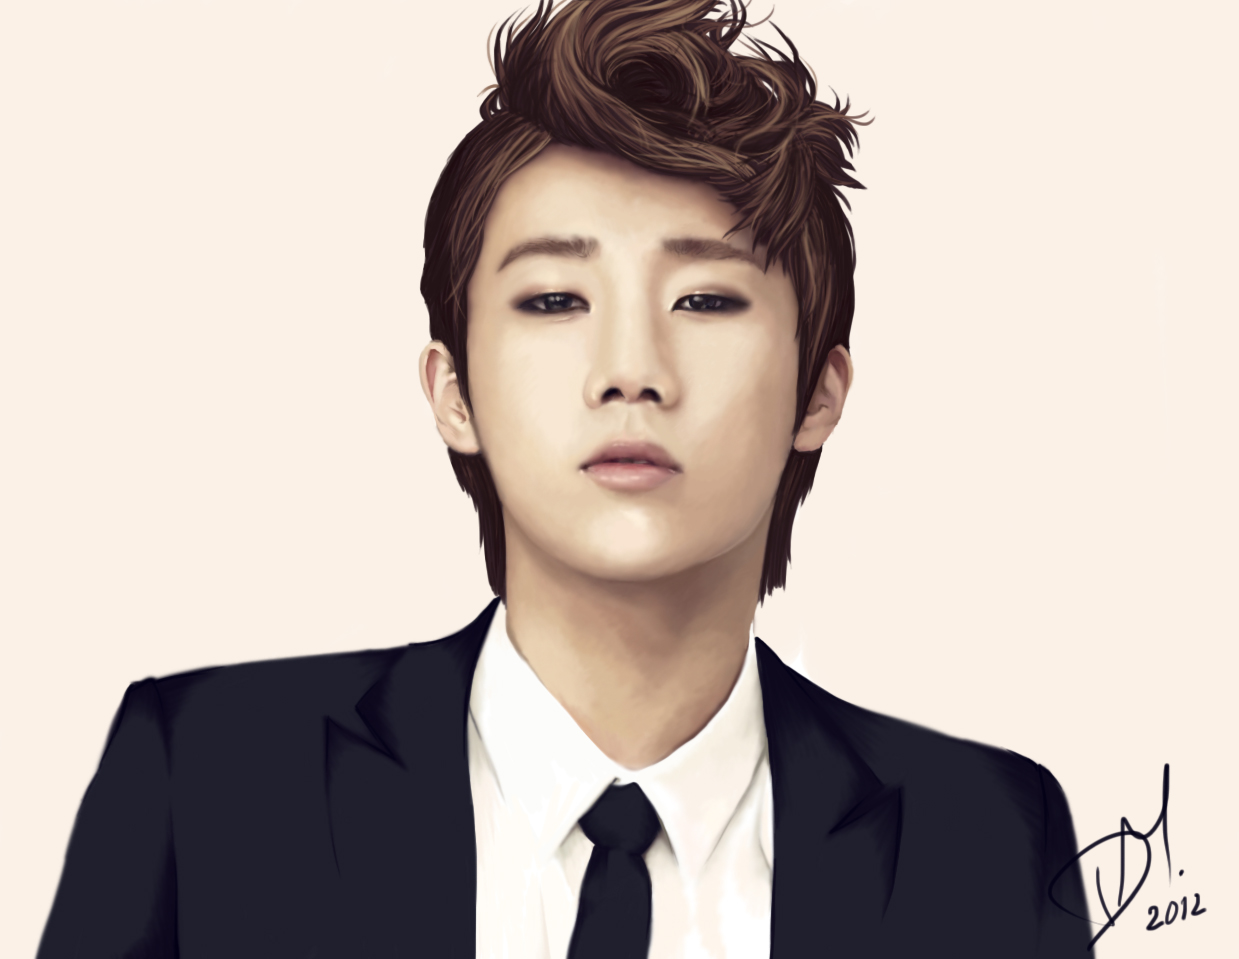 Sunggyu! ♥ - Sunggyu / Sungkyu Fan Art (35986497) - Fanpop